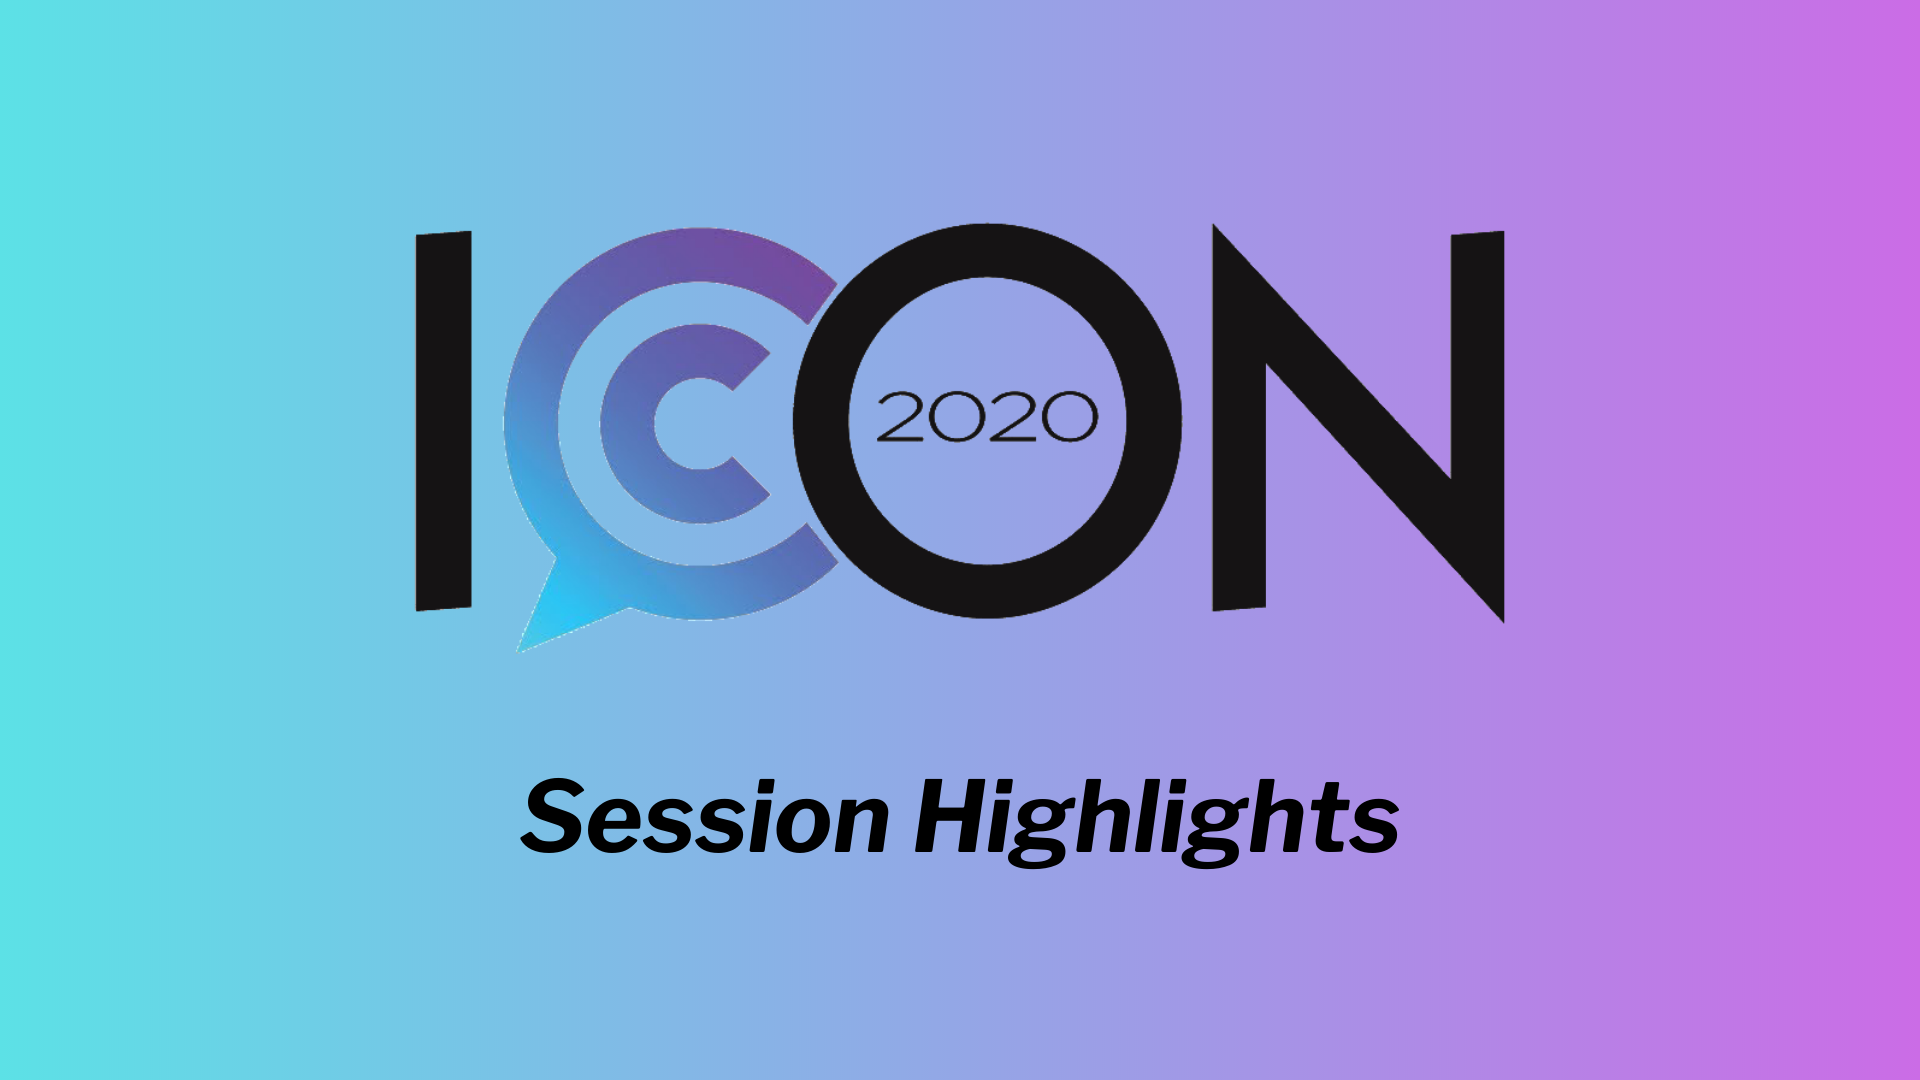 ICON 2020 Session Highlight- Inclusion and Addressing Imposter Syndrome